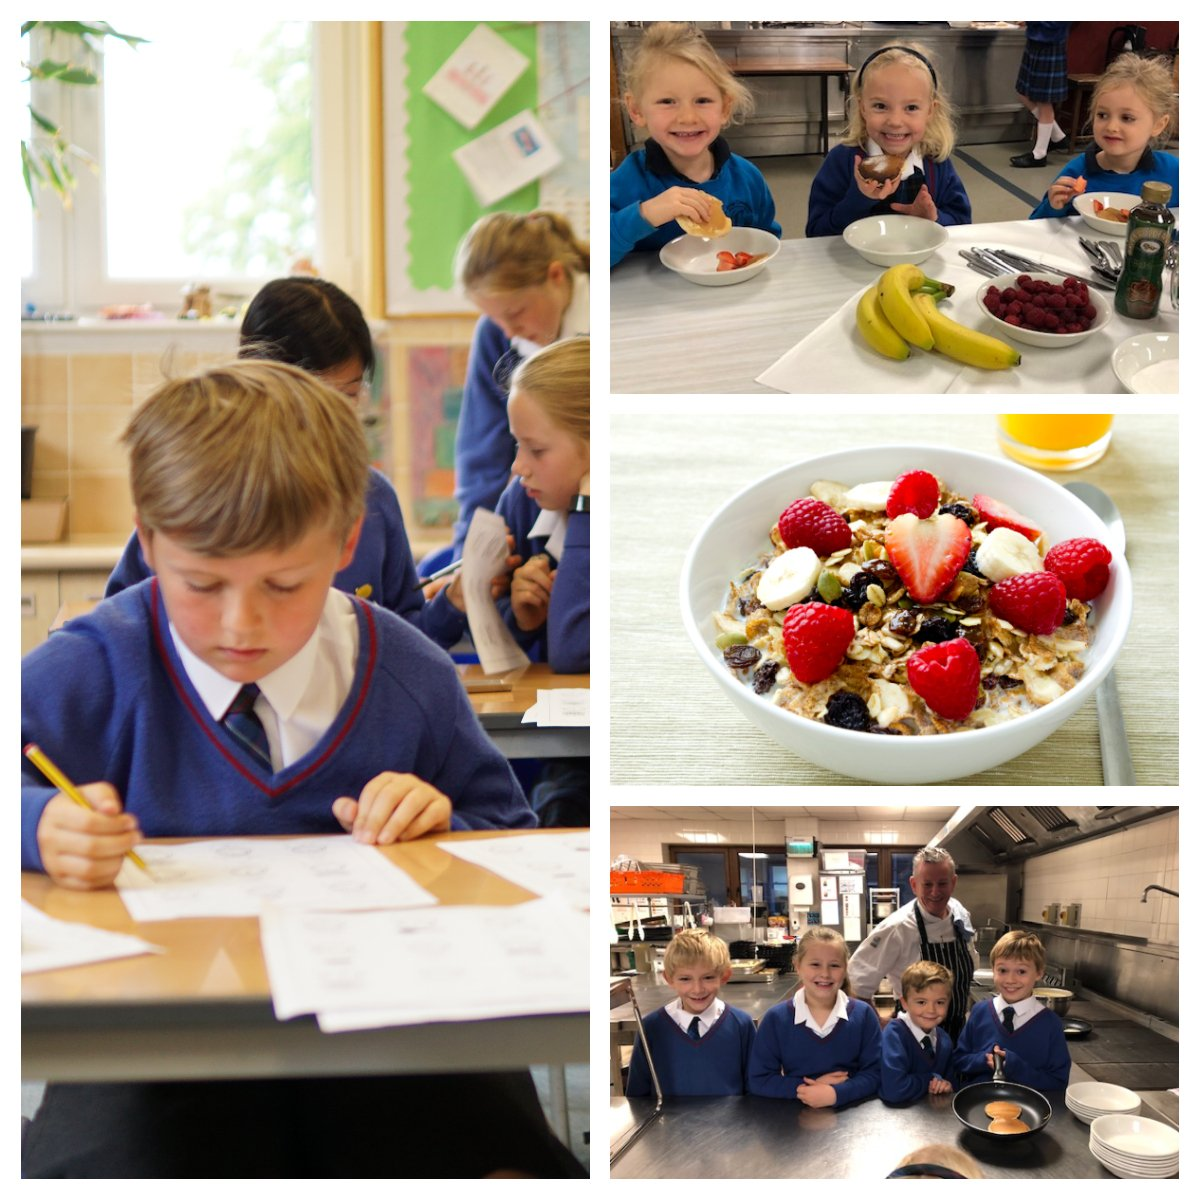 Craigclowan offers wraparound care for all pupils from 0730-1800 each day. From #breakfast at 0730 until Late Prep closes at 1800, school really is a hive of activity all day. Want to find out more? Come along to Open Morning on Thursday from 0900-1200. https://bit.ly/2B9IqTs